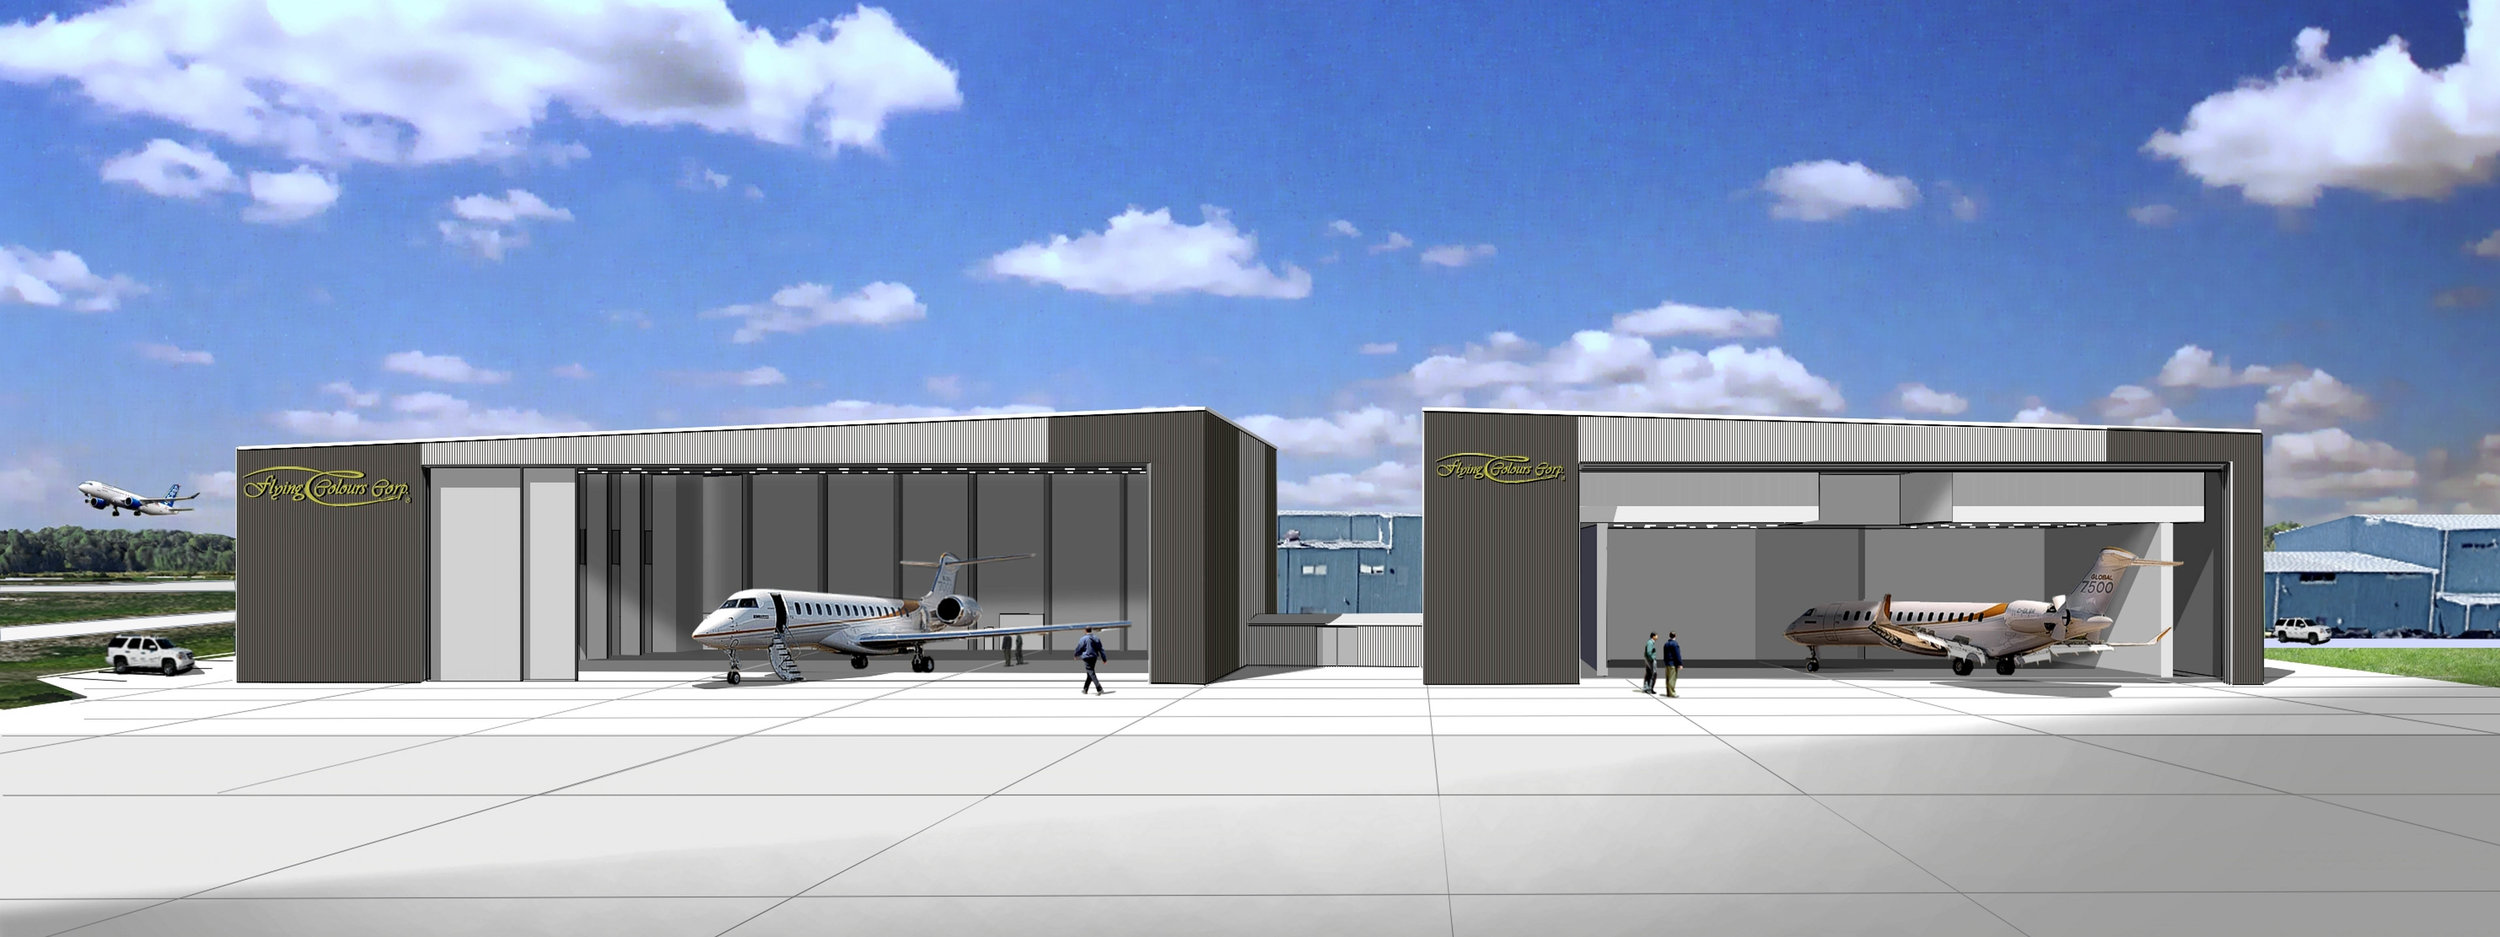 A rendering of the new hangar due to open in mid-2019